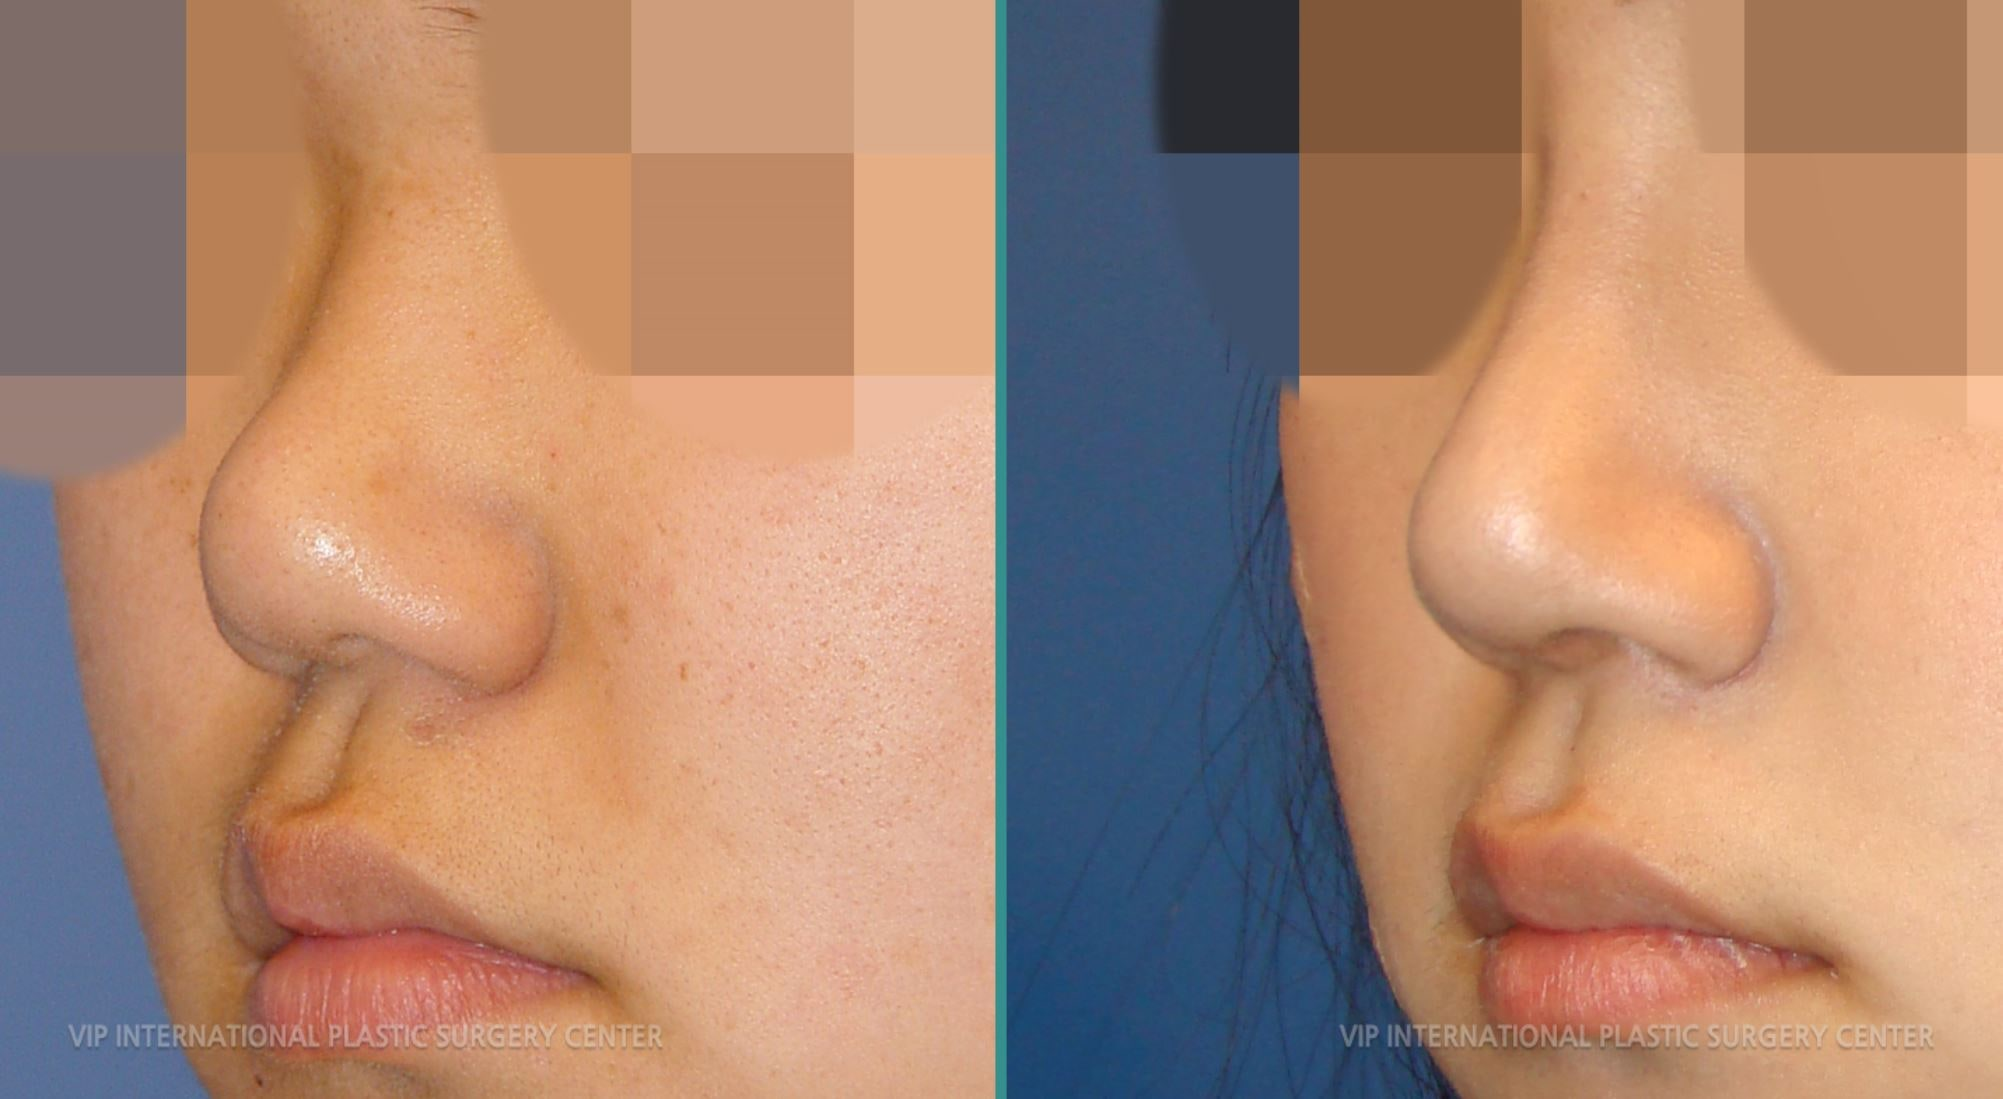 Revision Rhinoplasty Before and After(Stubby Nose)